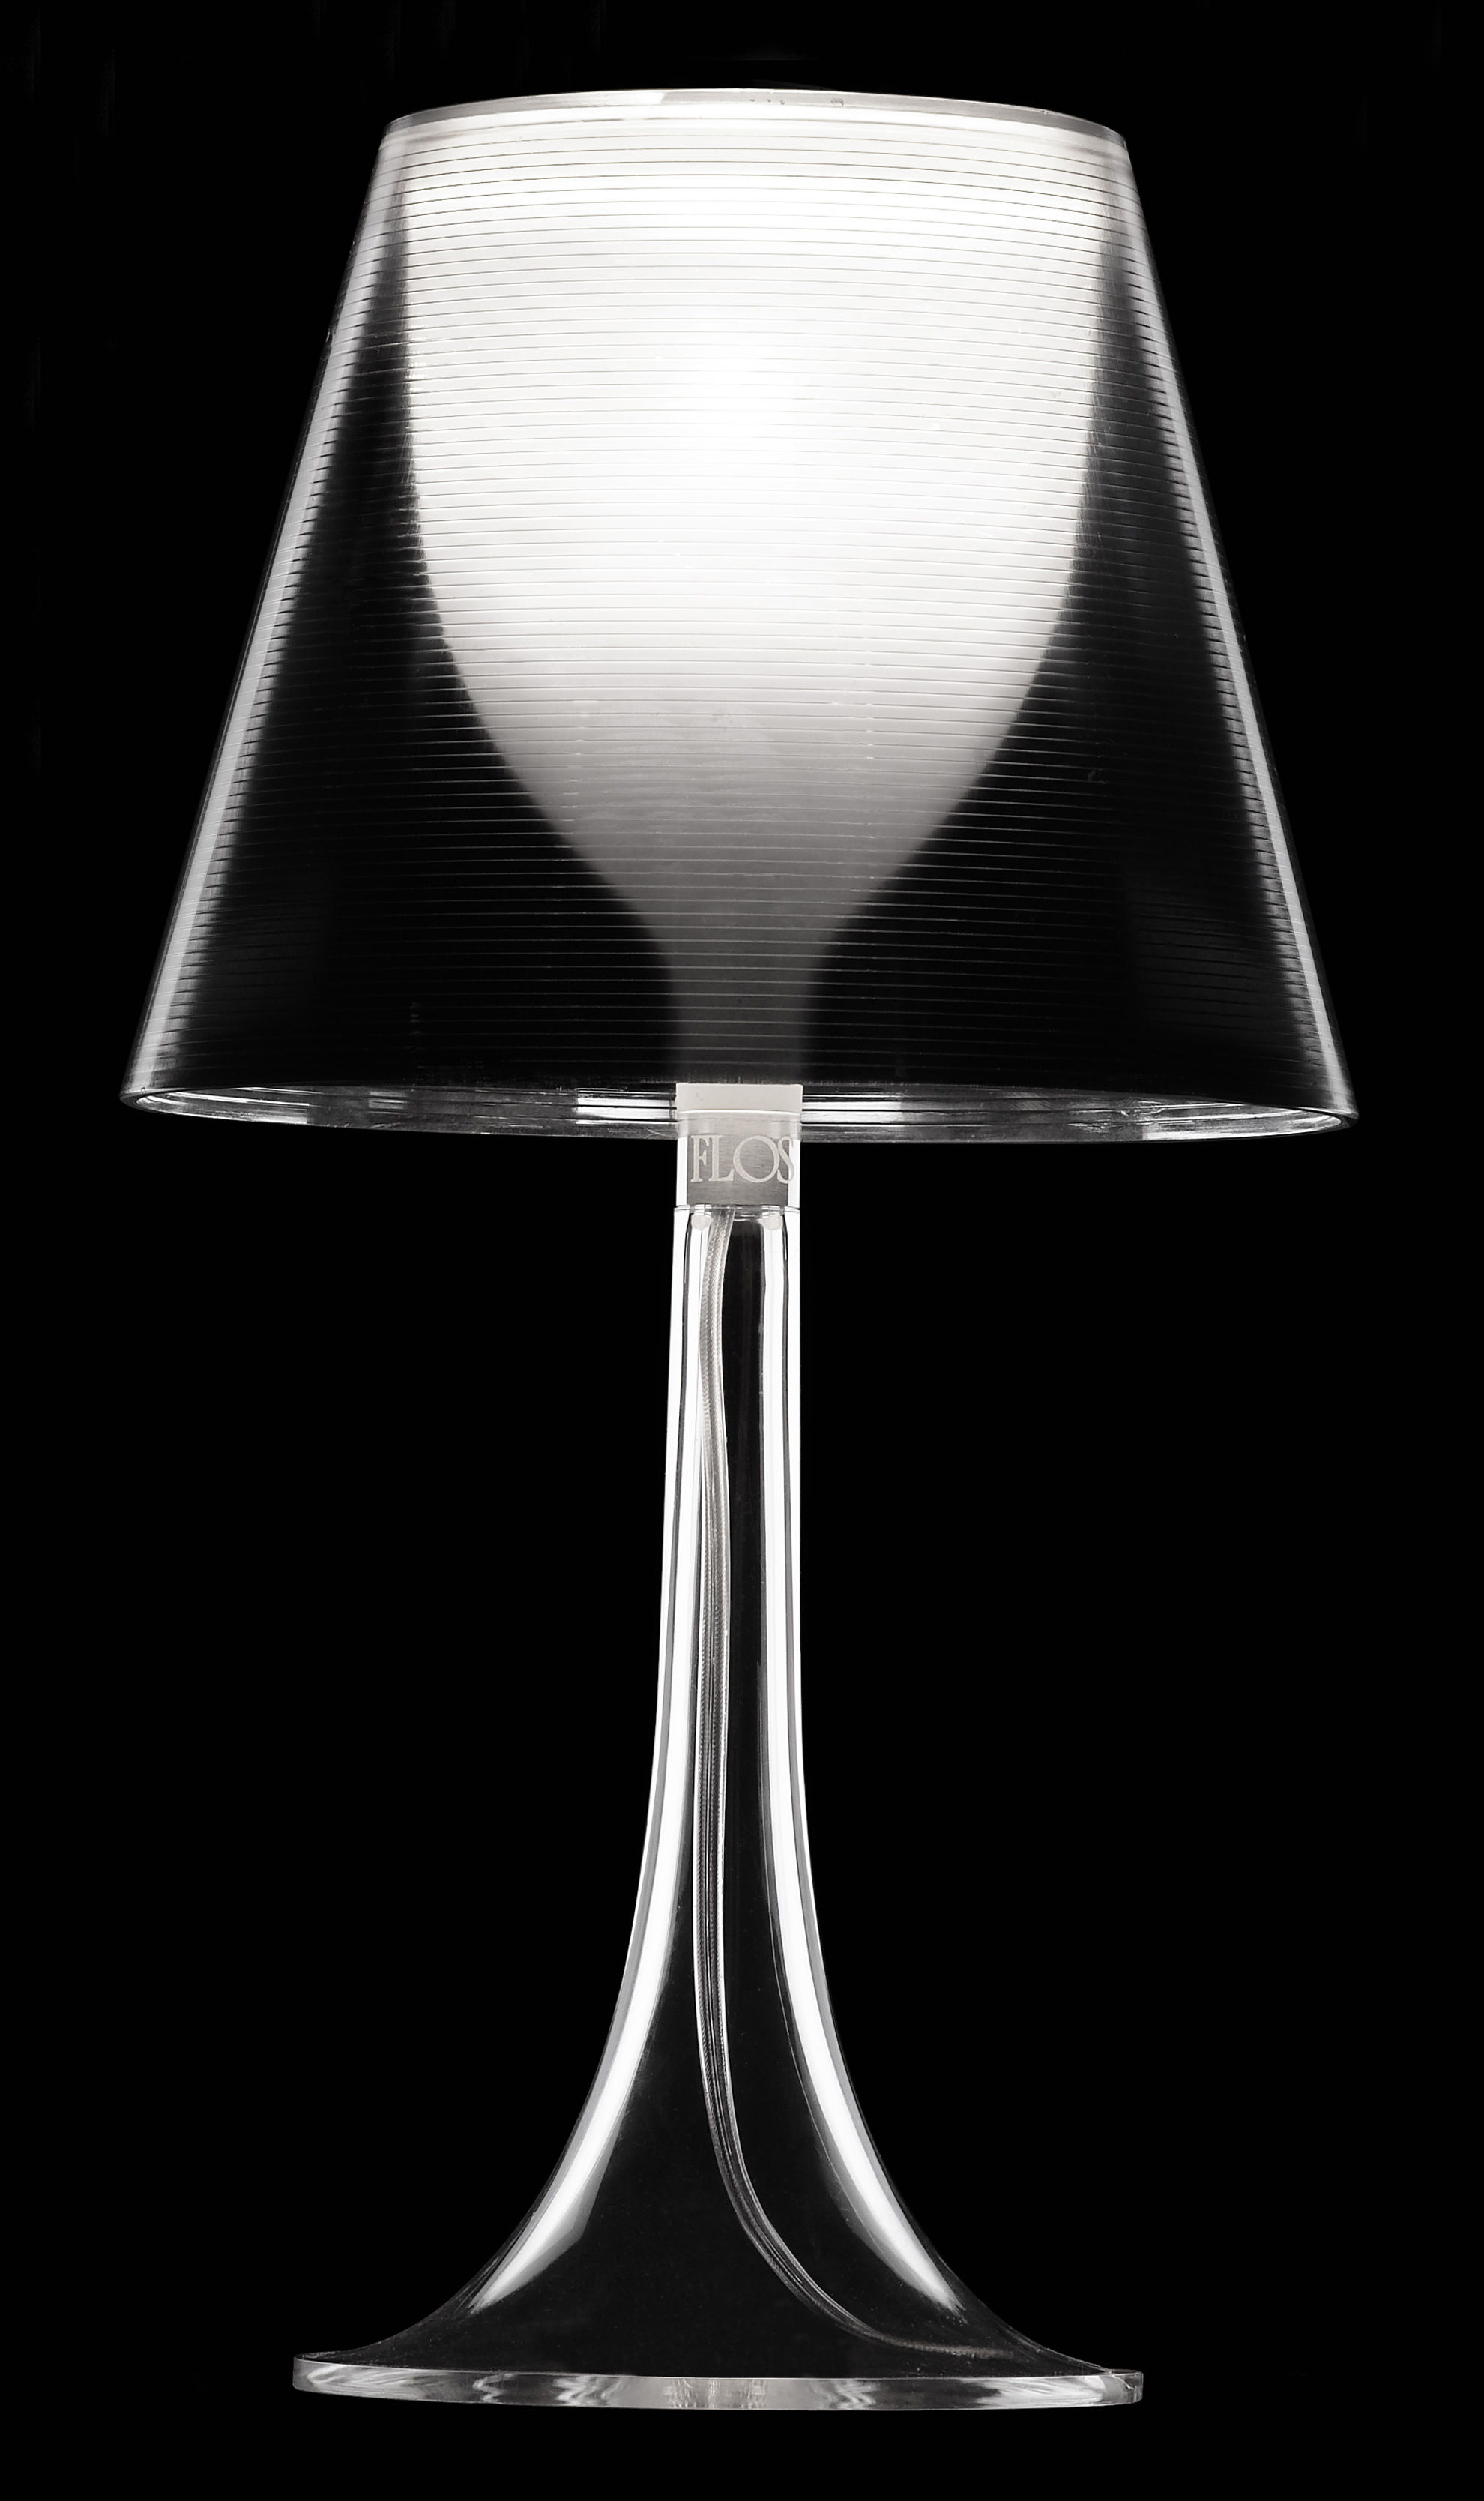 Miss k table lamp silver by flos for Flos miss k table lamp uk